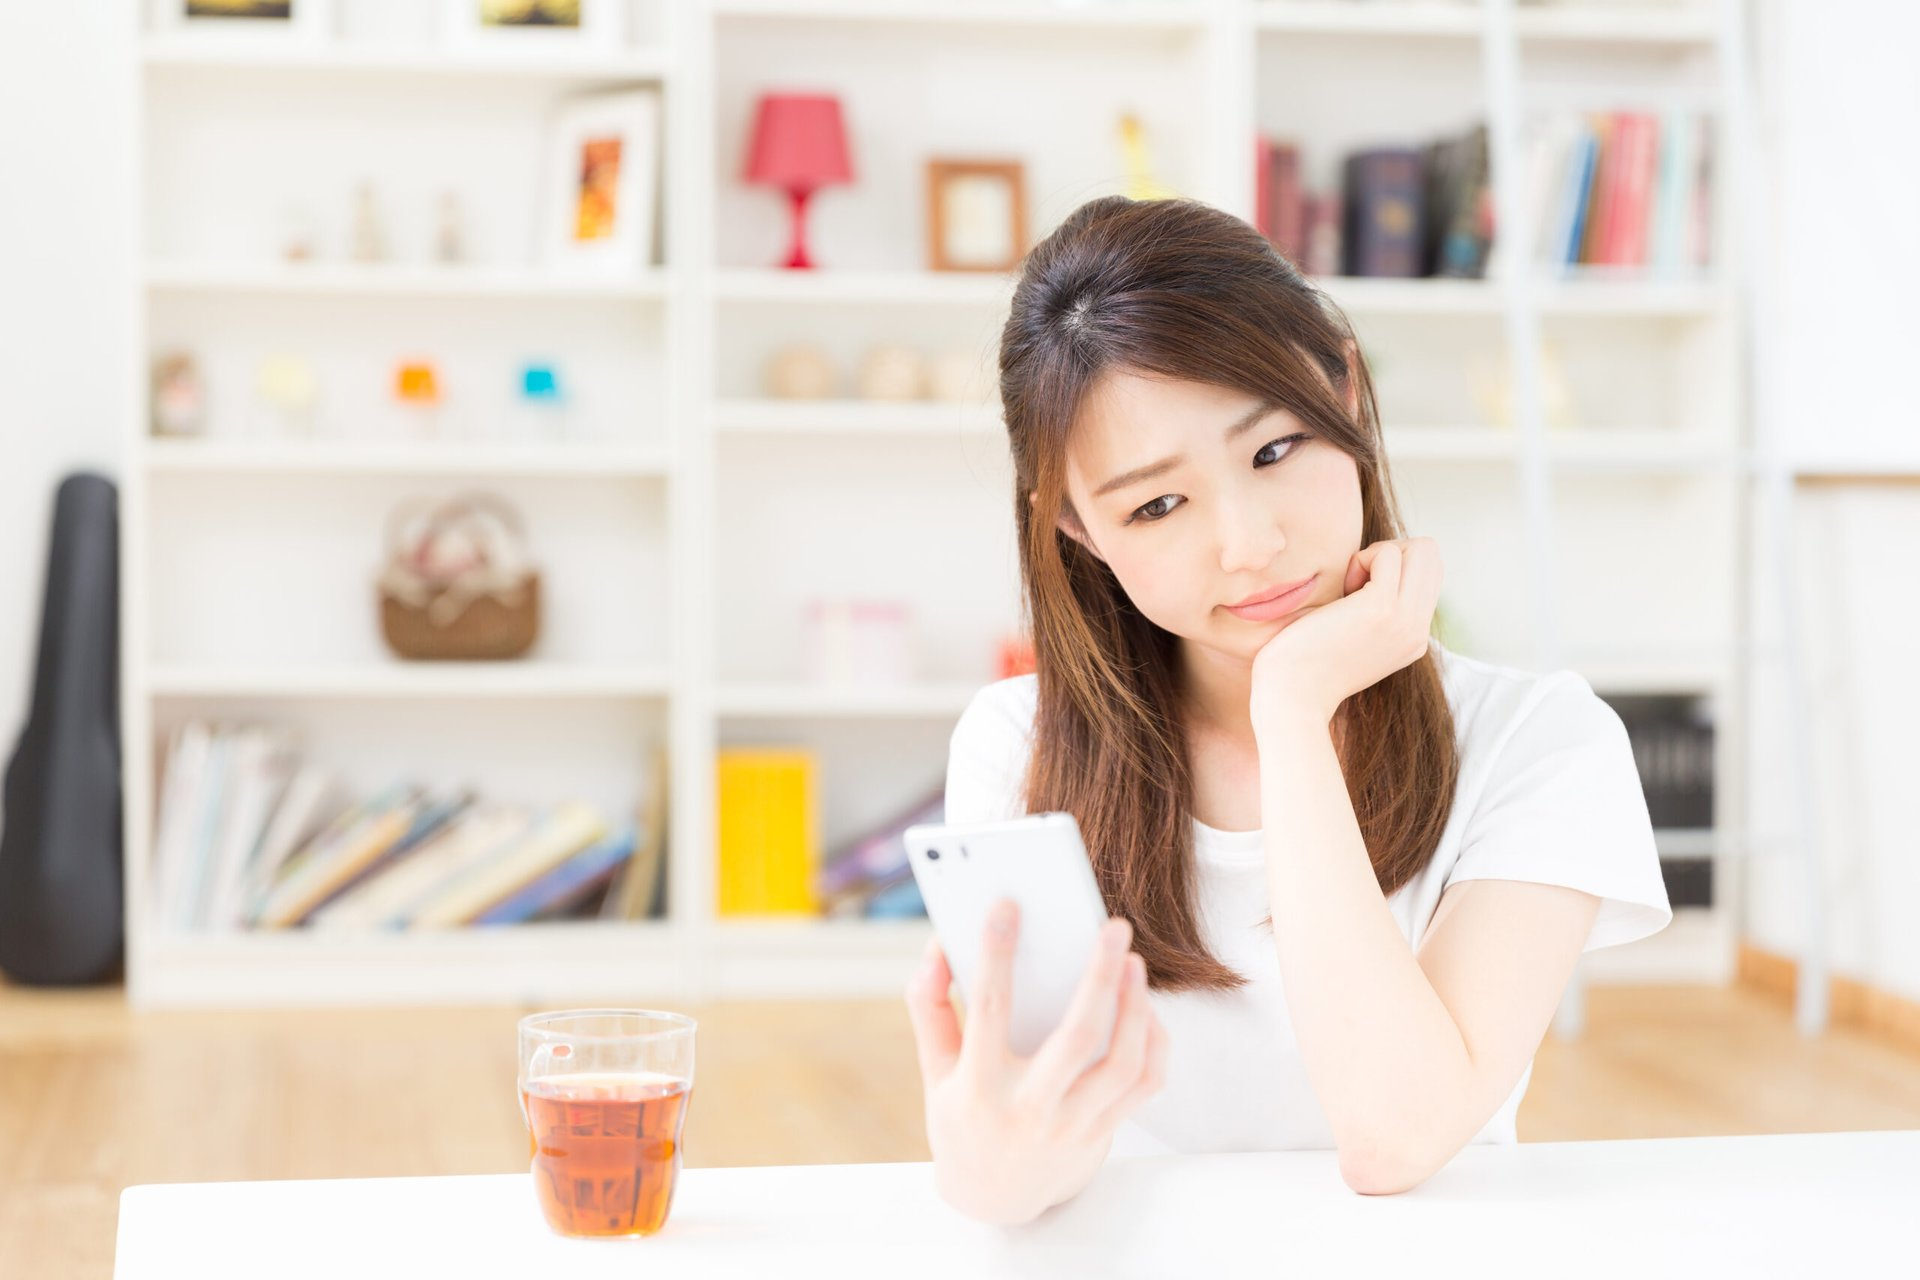 Young woman looking at her smartphone thoughtfully, considering lowering her bill